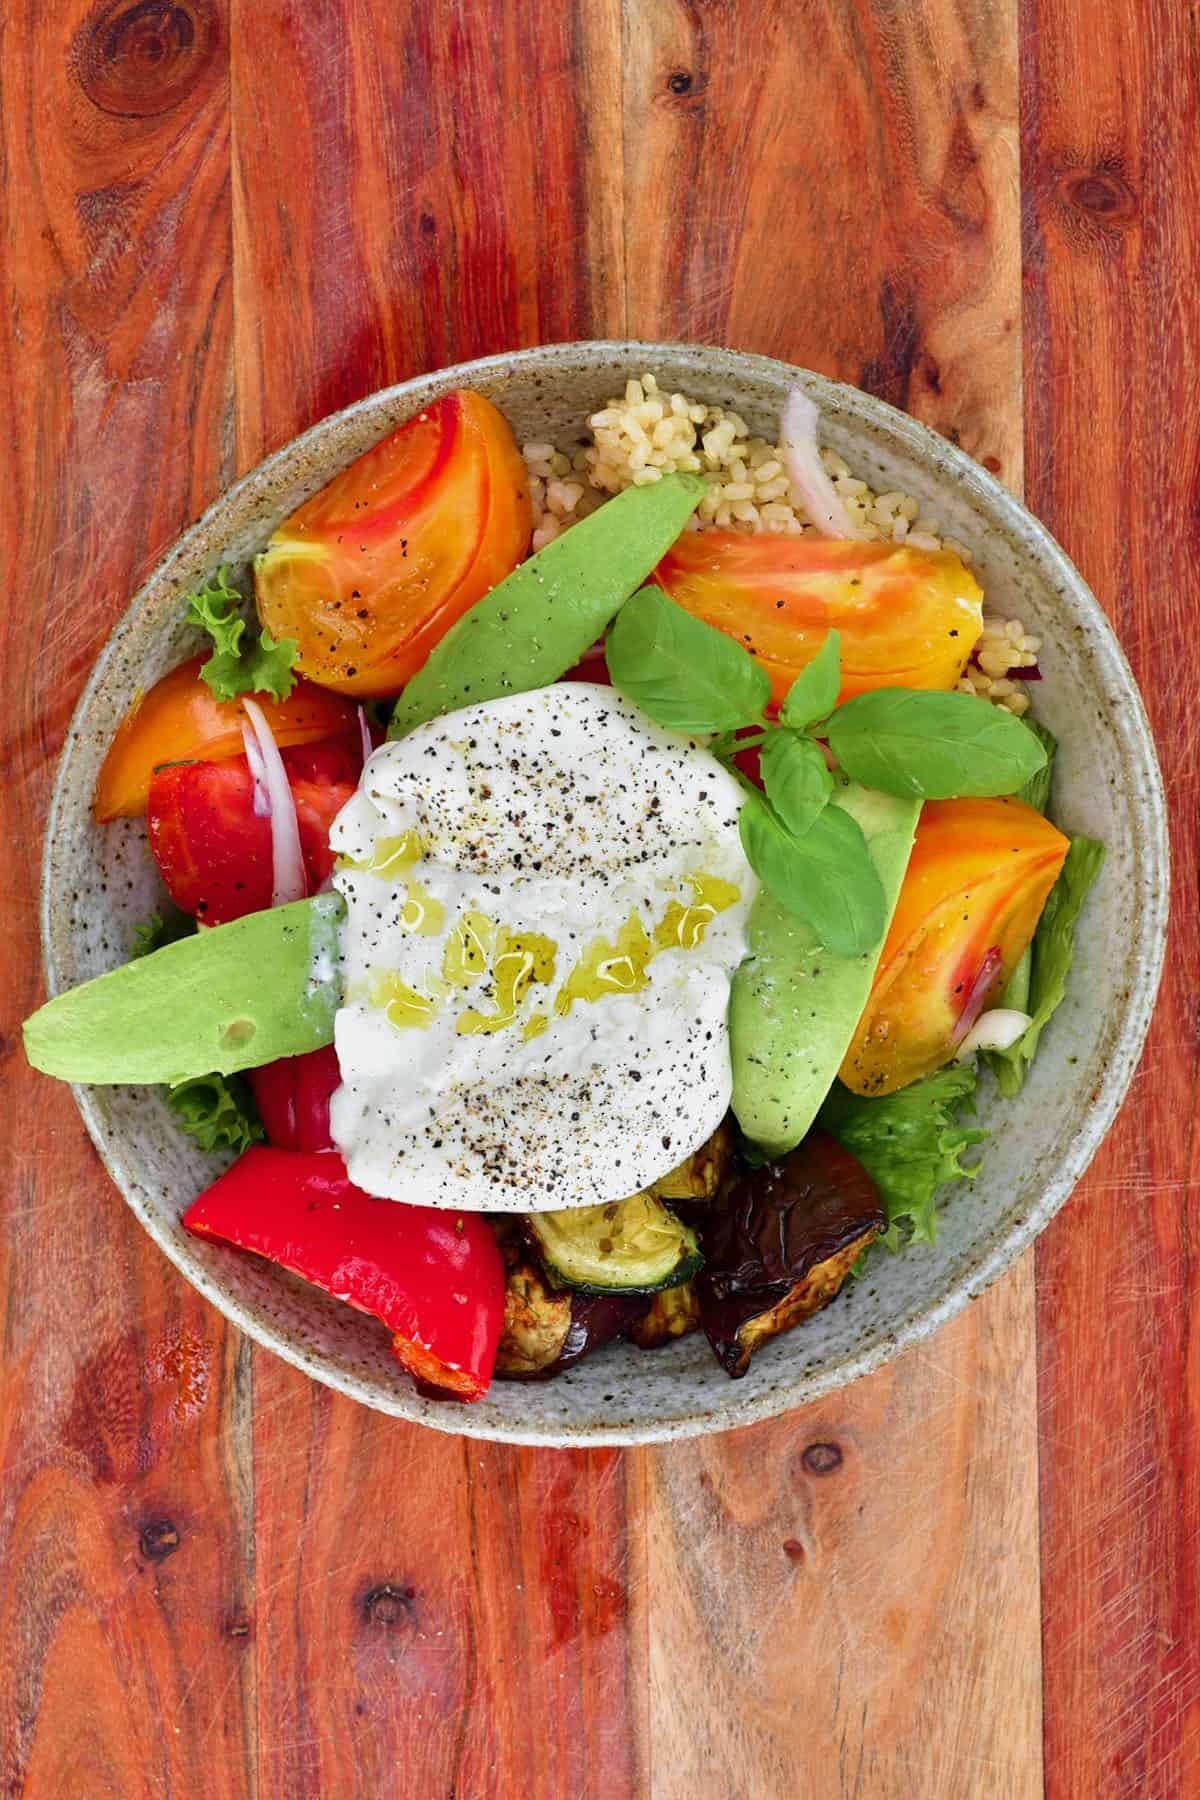 A bowl with roasted veggie salad and burrata